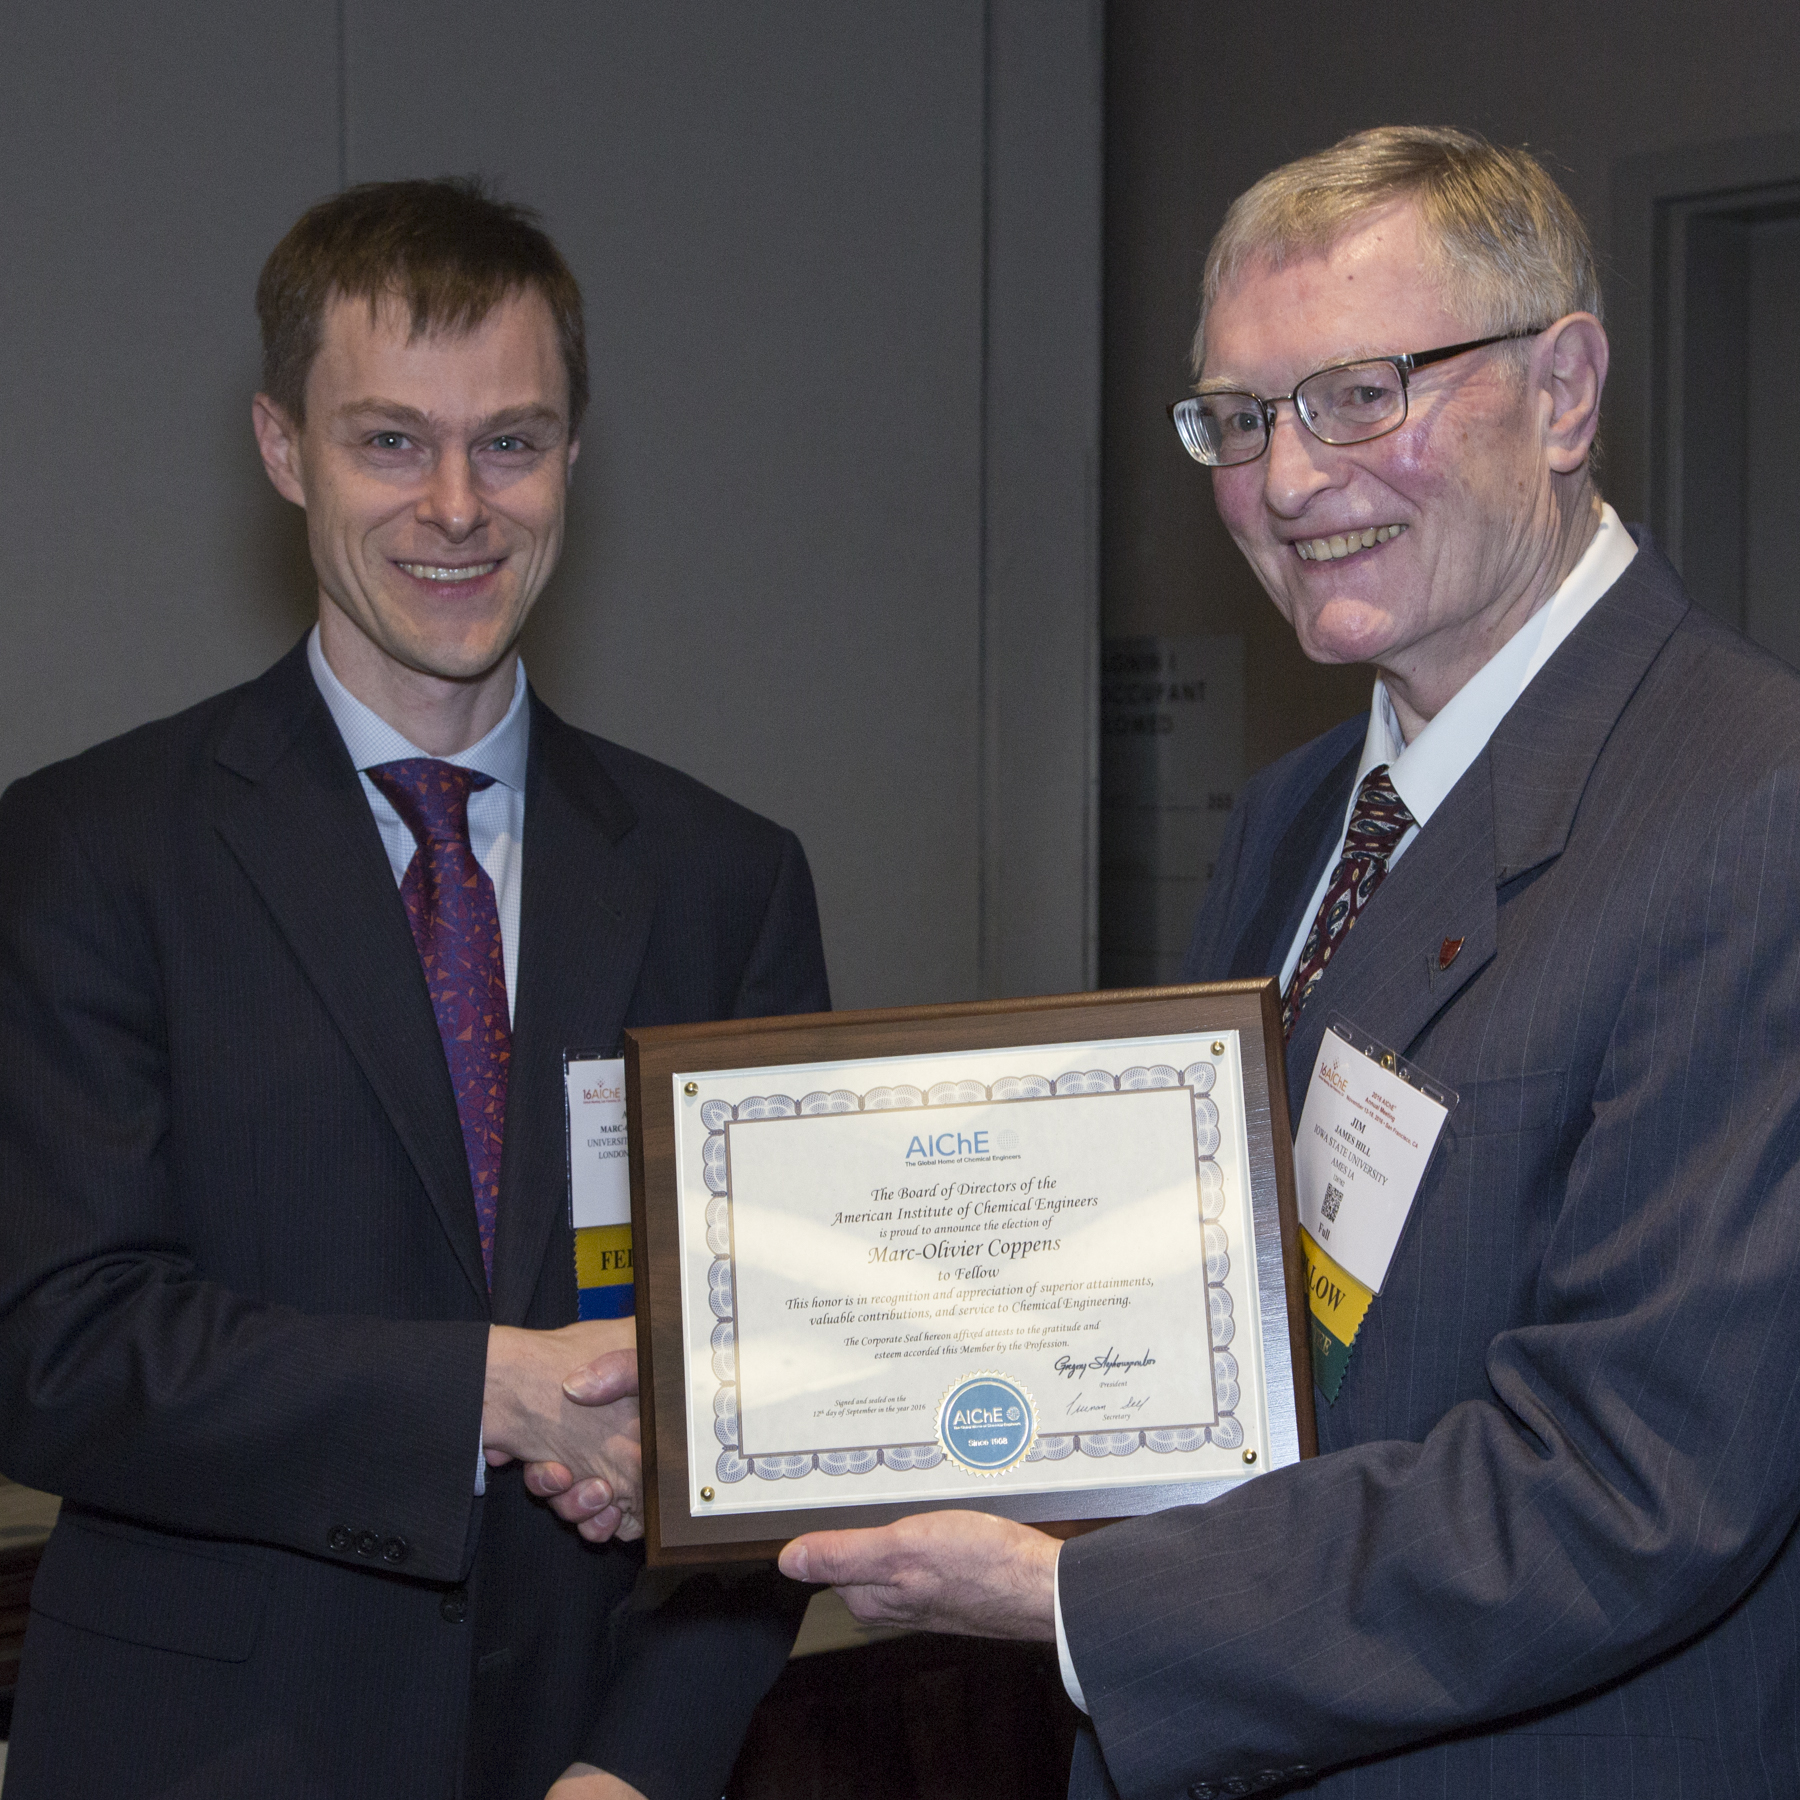 Professor Marc-Olivier Coppens (left) awarded AIChE Fellow plaque, San Francisco Photo credit: Margot Hartford